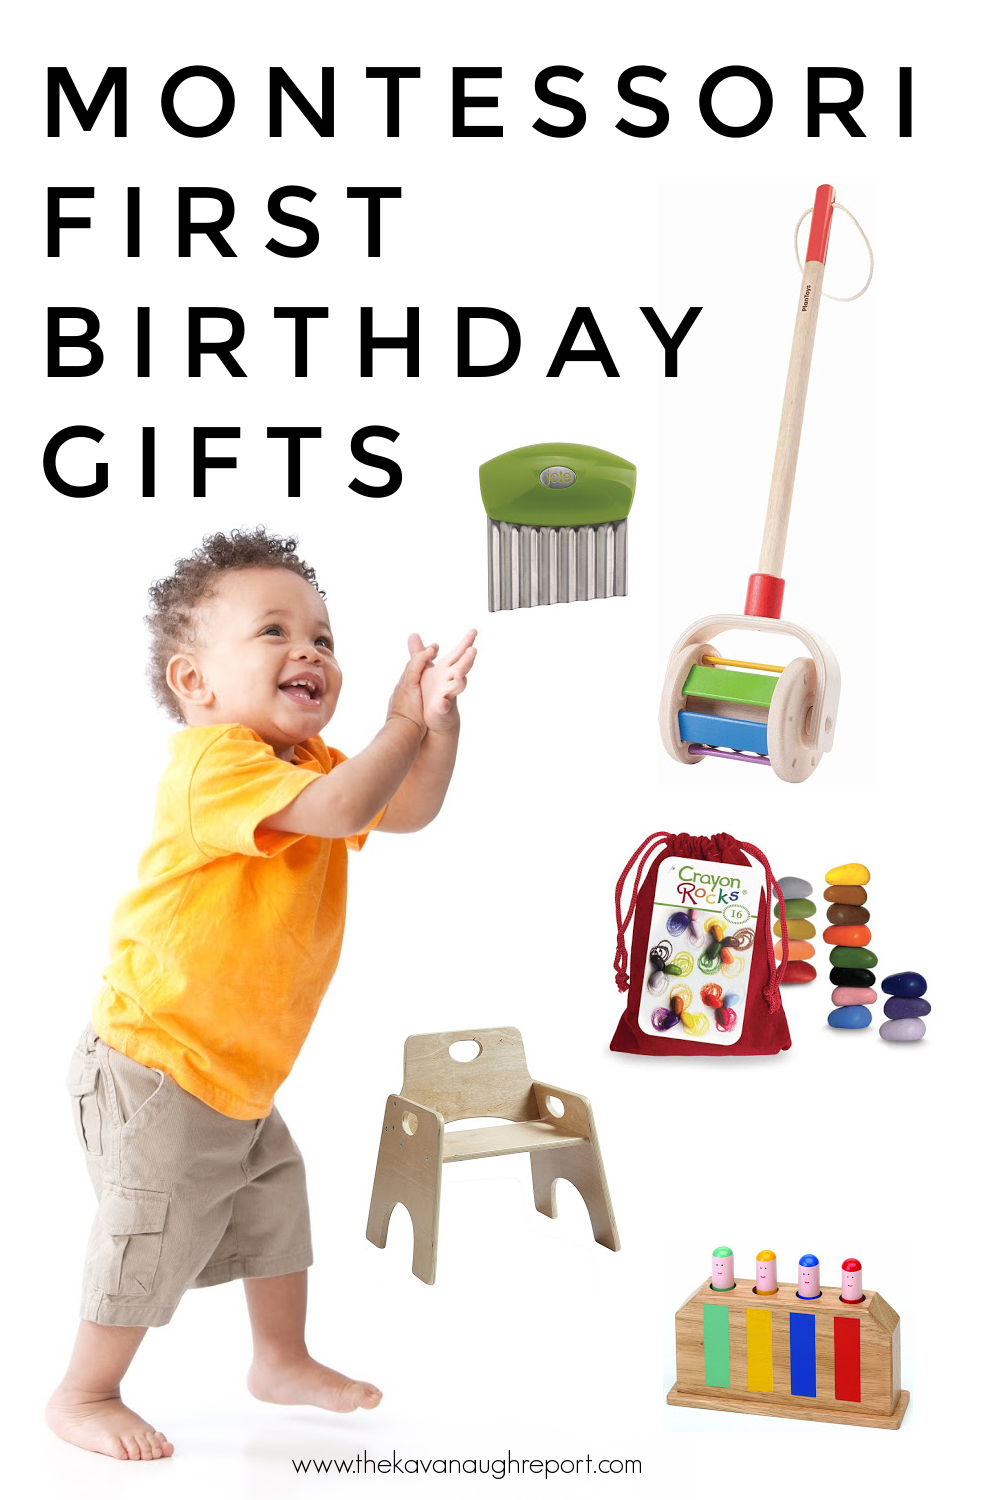 Montessori baby toys for a one year old. These toys and activities are perfect first birthday gifts.